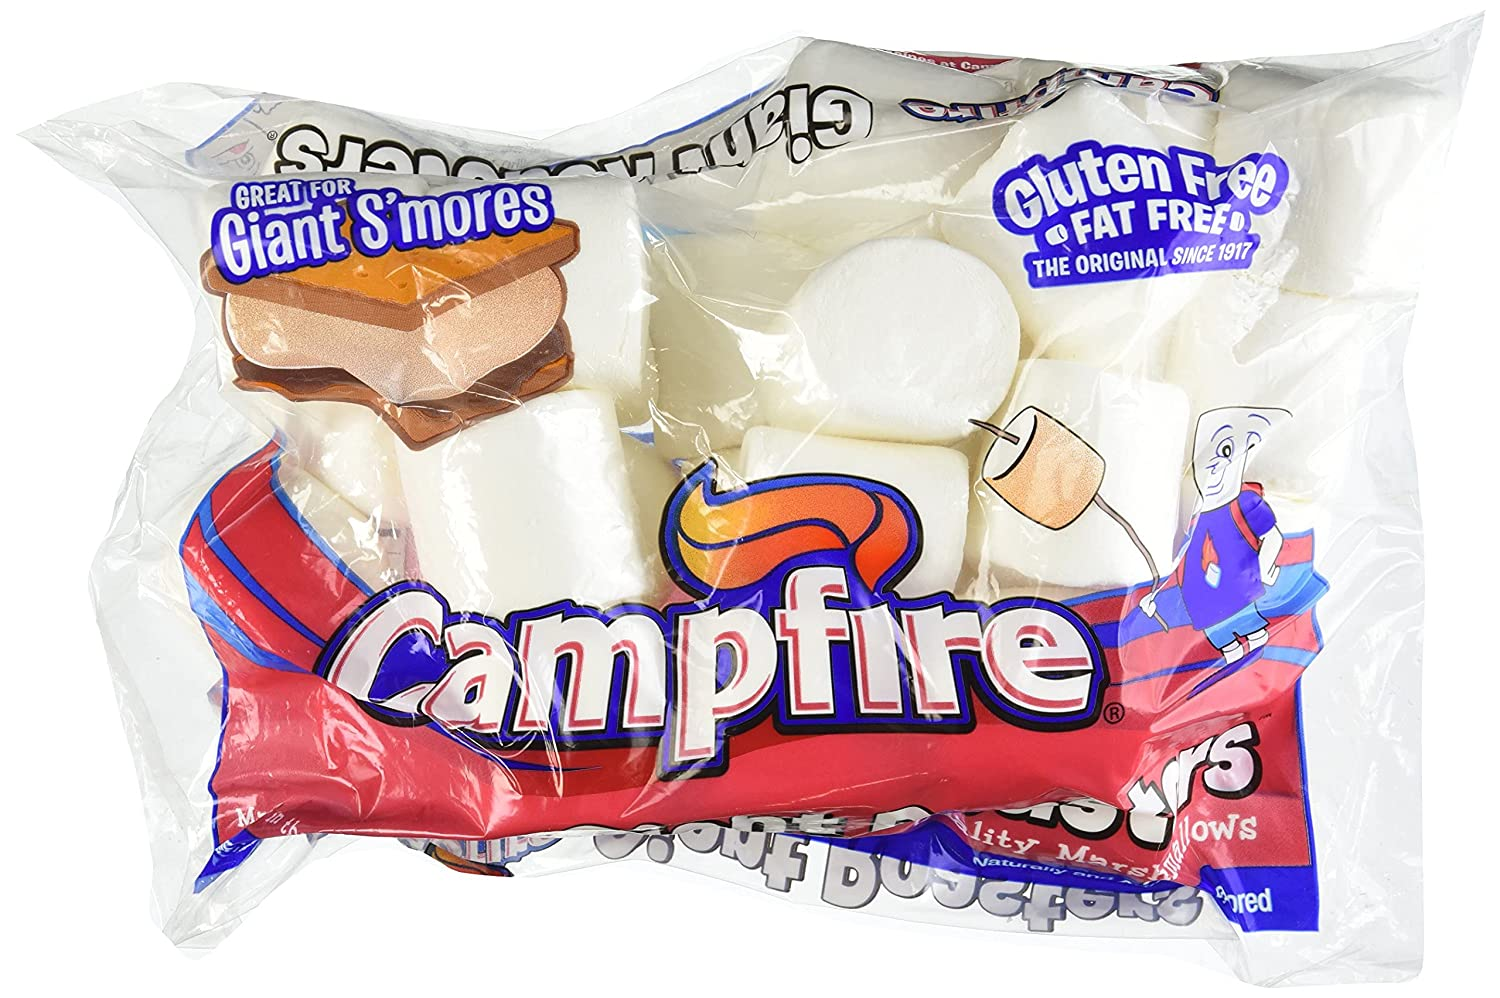 Campfire Premium Extra Import Daily bargain sale Large 2 Bag Marshmallows 28oz Pa Inch